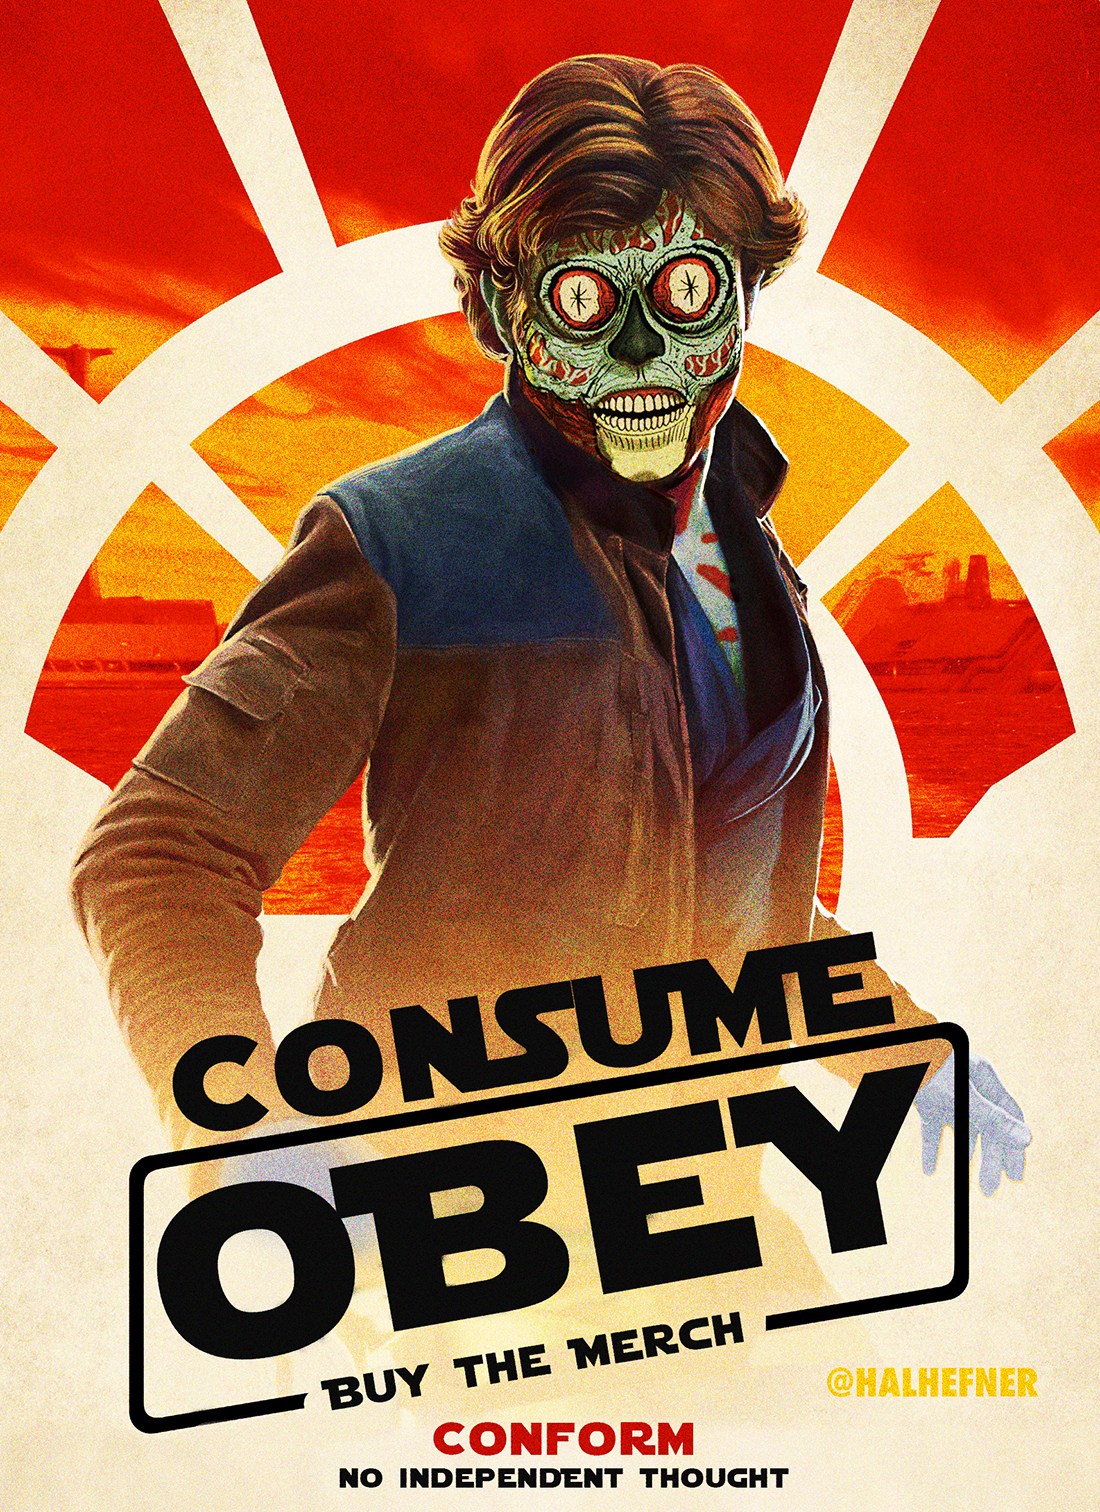 solo-star-wars-story-hal hefner-they live_consume.jpg